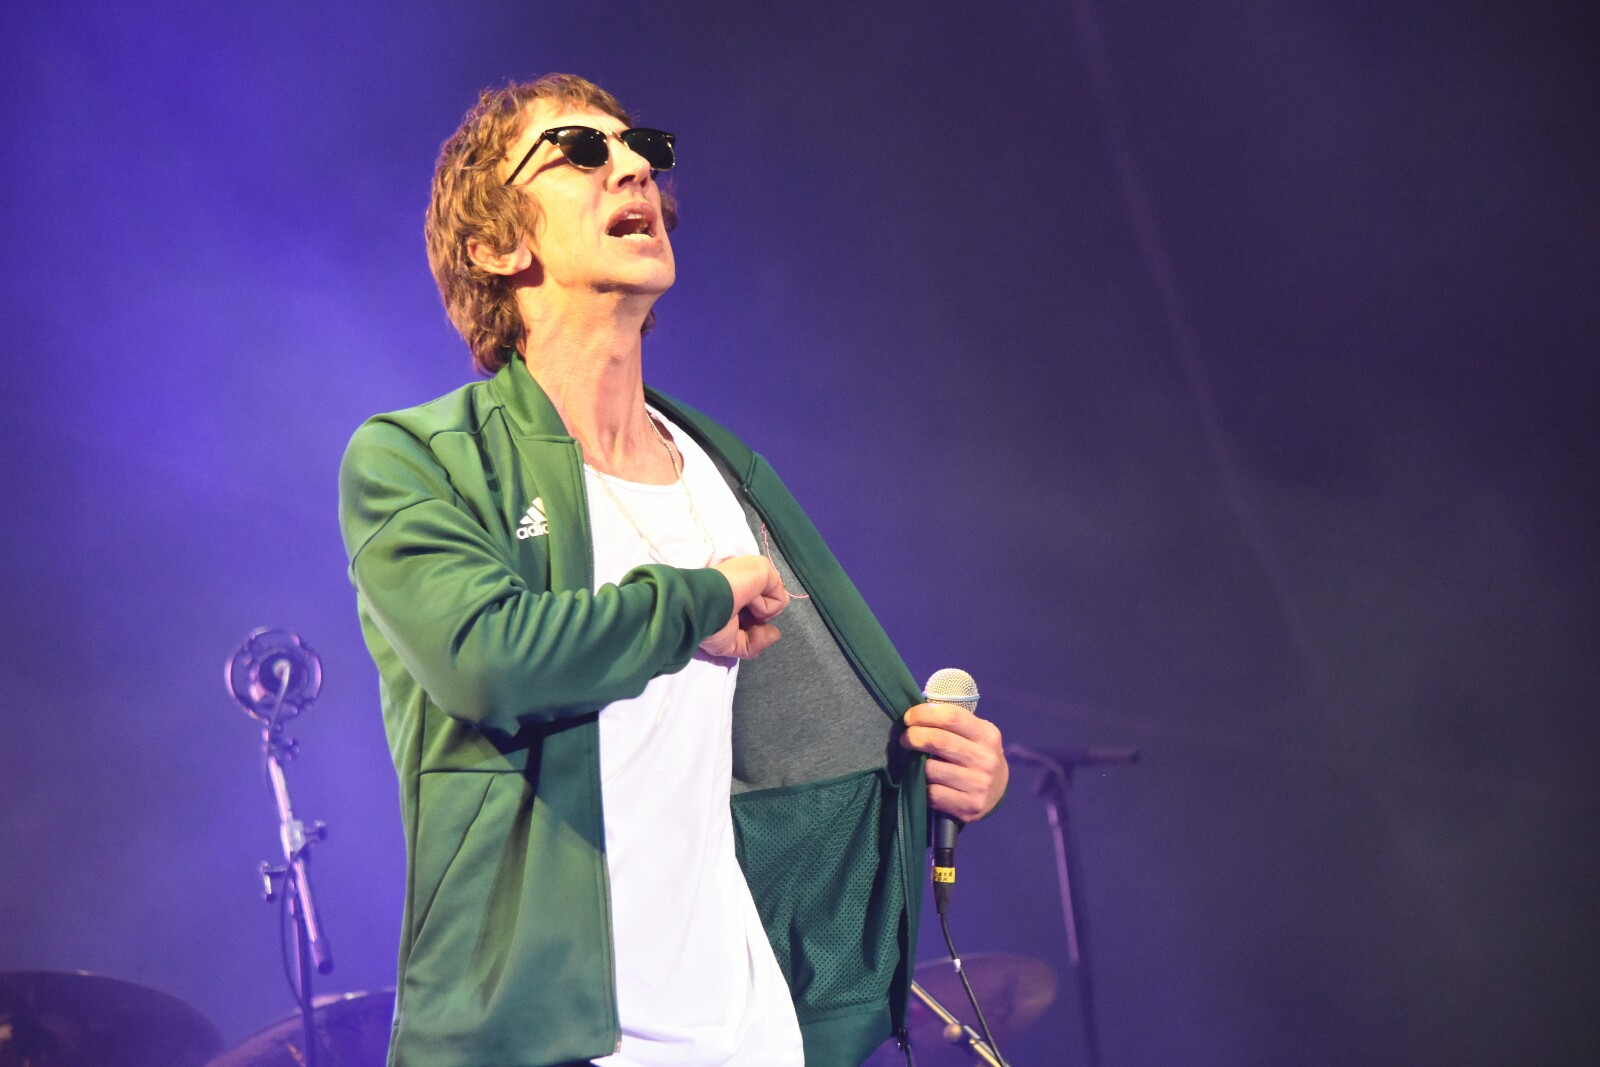 Richard Ashcroft(1).JPG